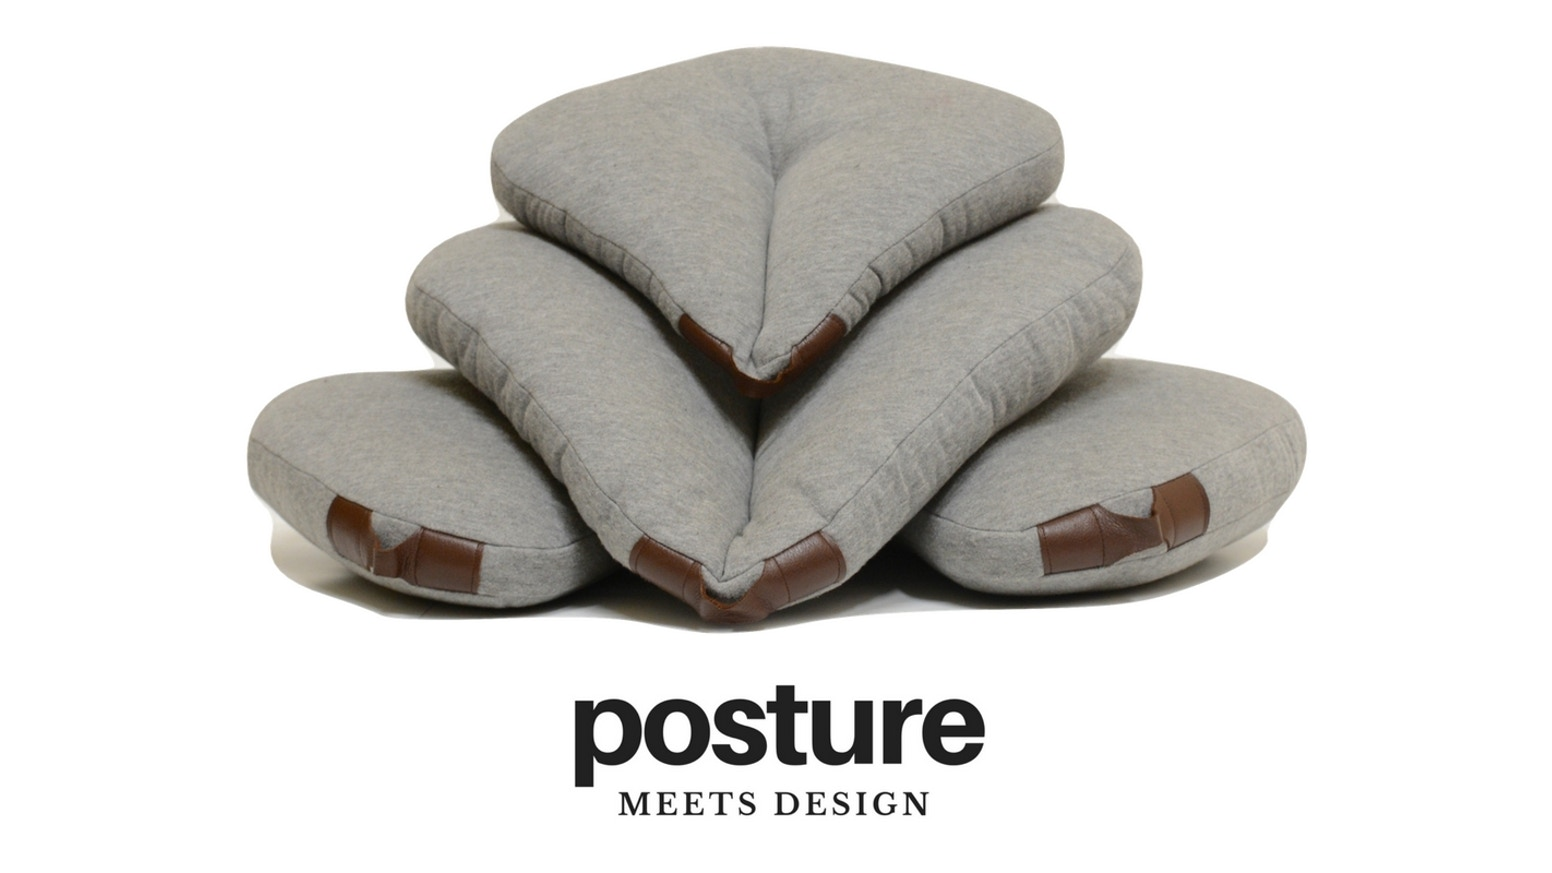 REBRANDED: The Lifestyle Lab. If you missed us on Kickstarter, check out our new posture pillow collection.